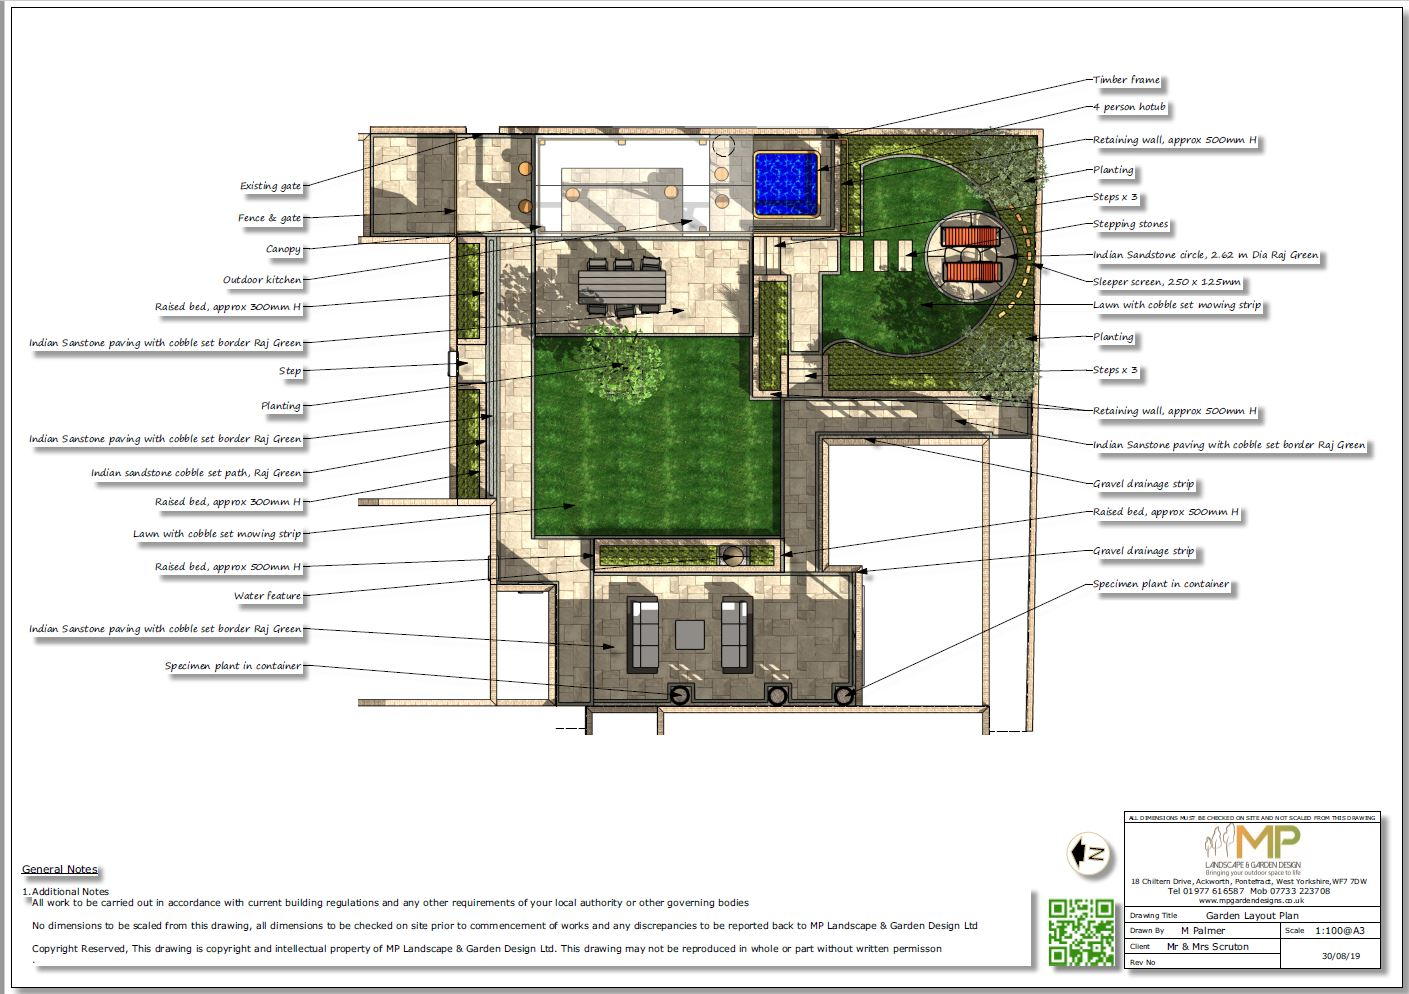 1. Garden layout plan for a property in Pollington